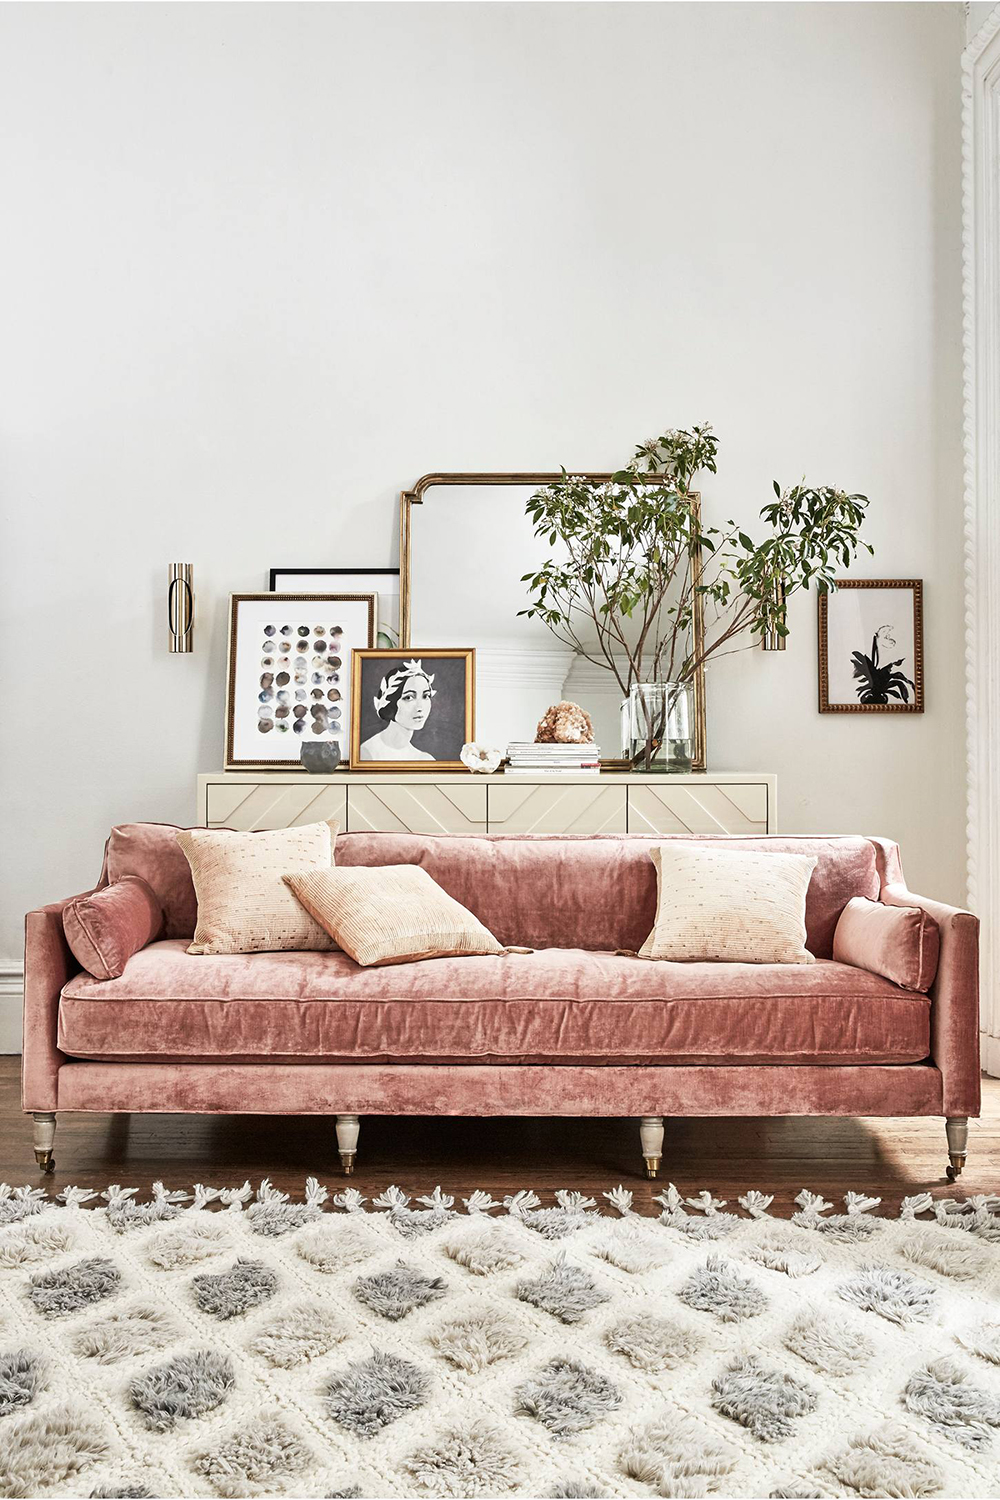 Anthropologie Slub Velvet Leonelle Sofa - rose inspiration